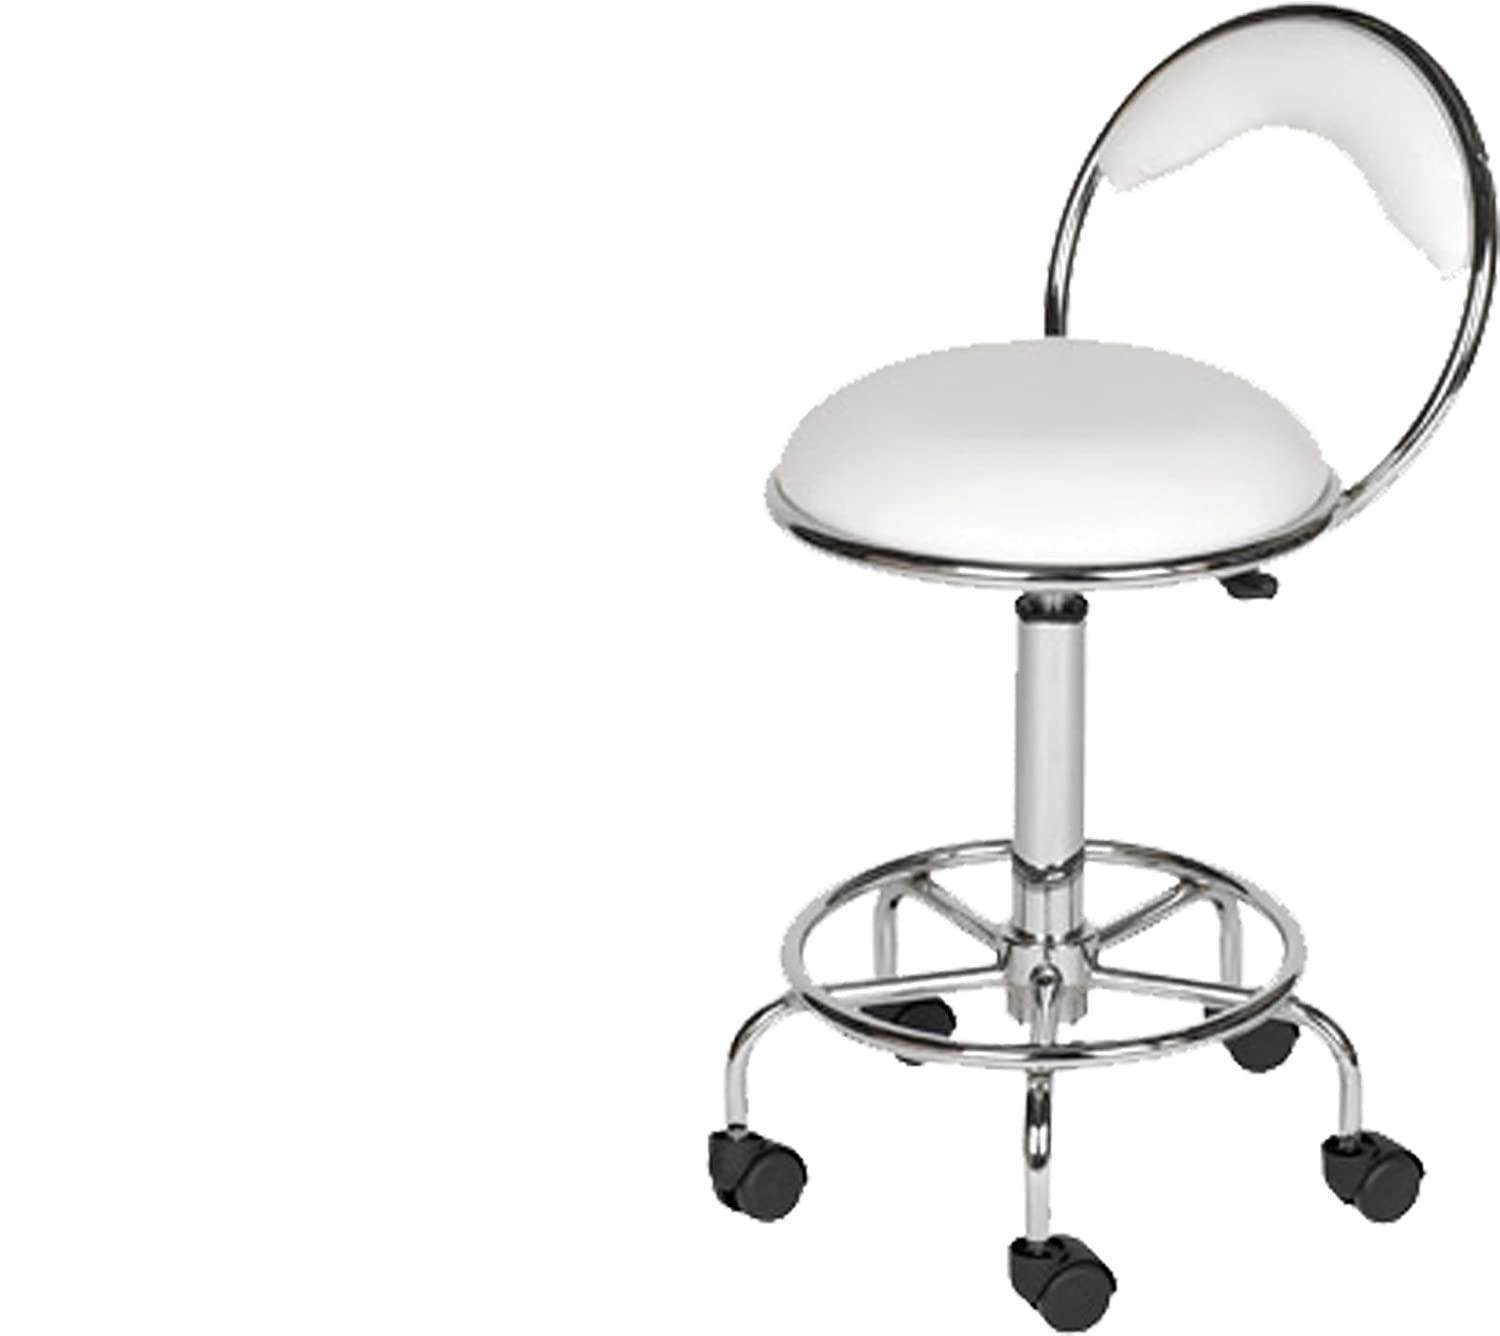 Amazon.com LCL Beauty White Stool Chair Back Support foot Rest Dentist Doctor Medical Office Salon Spa Tattoo Equipment Beauty  sc 1 st  Amazon.com & Amazon.com: LCL Beauty White Stool Chair Back Support foot Rest ... islam-shia.org